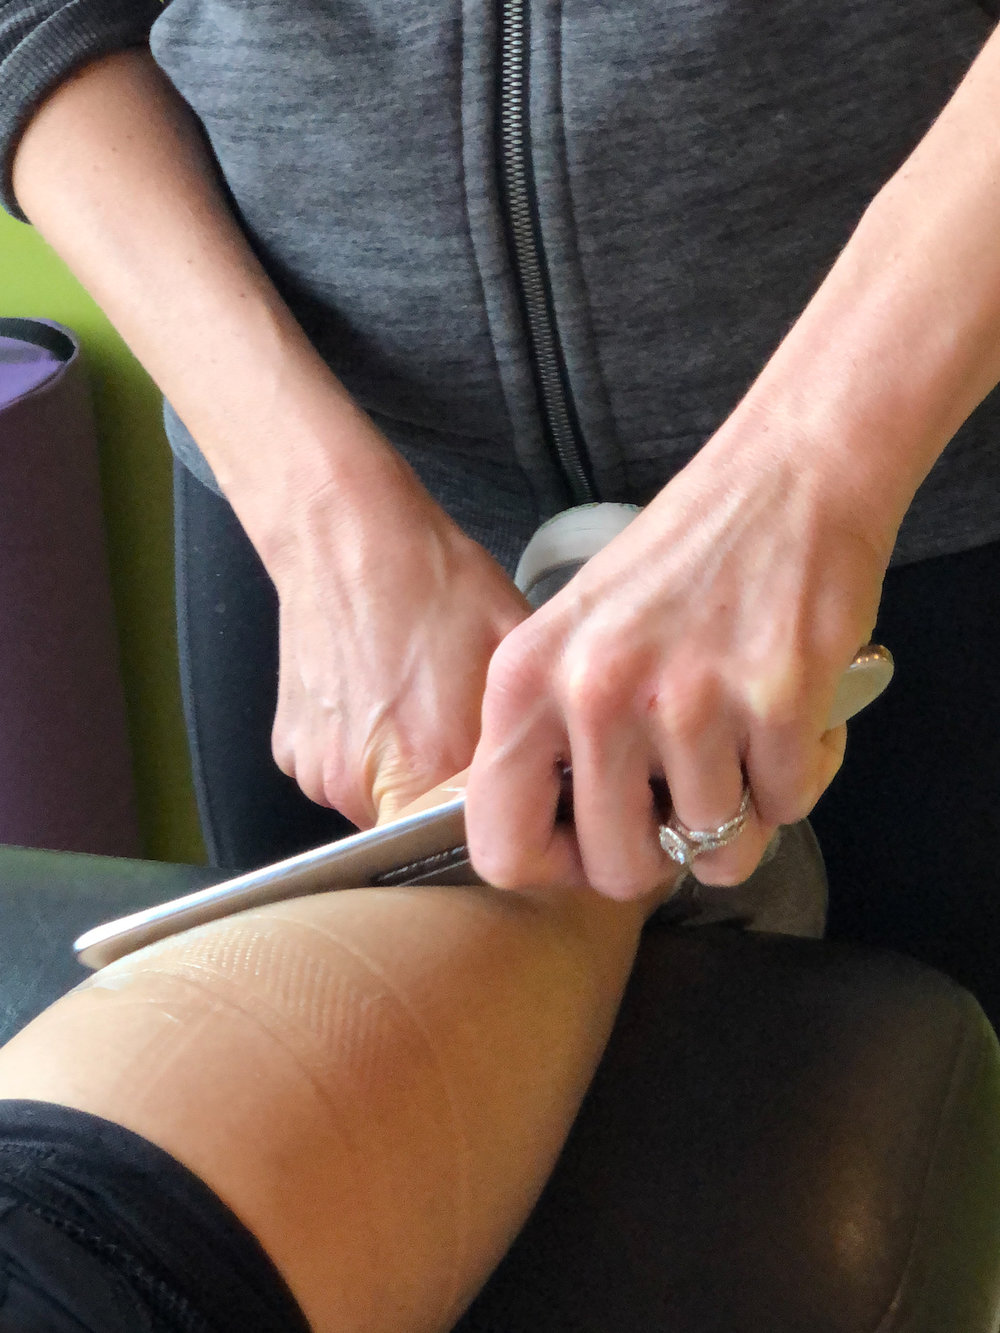 Fremont foot and ankle pain treatment in seattle, wa